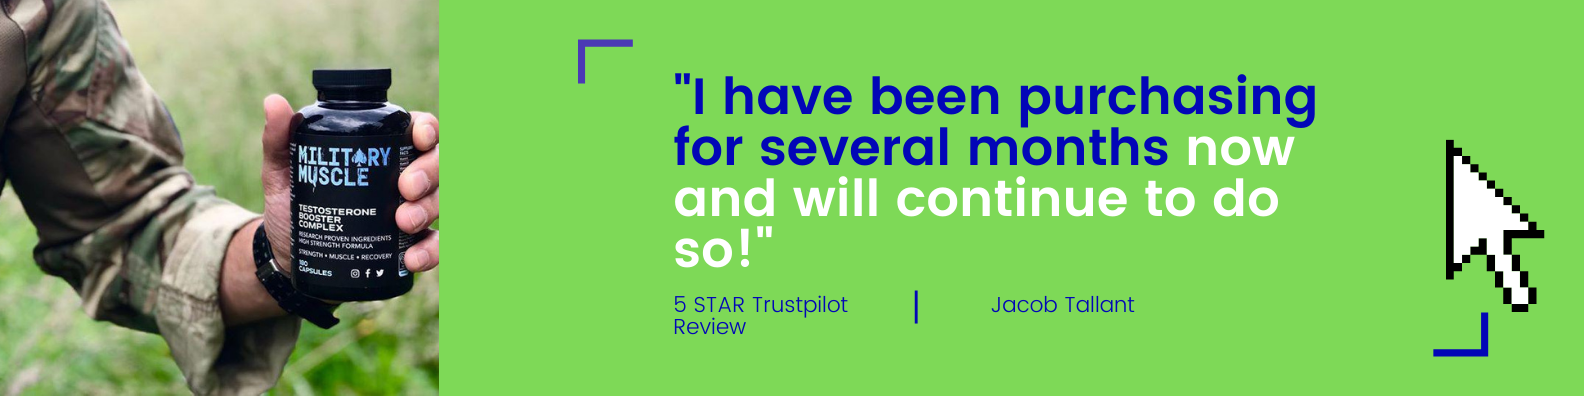 5 star military muscle customer review trustpilot